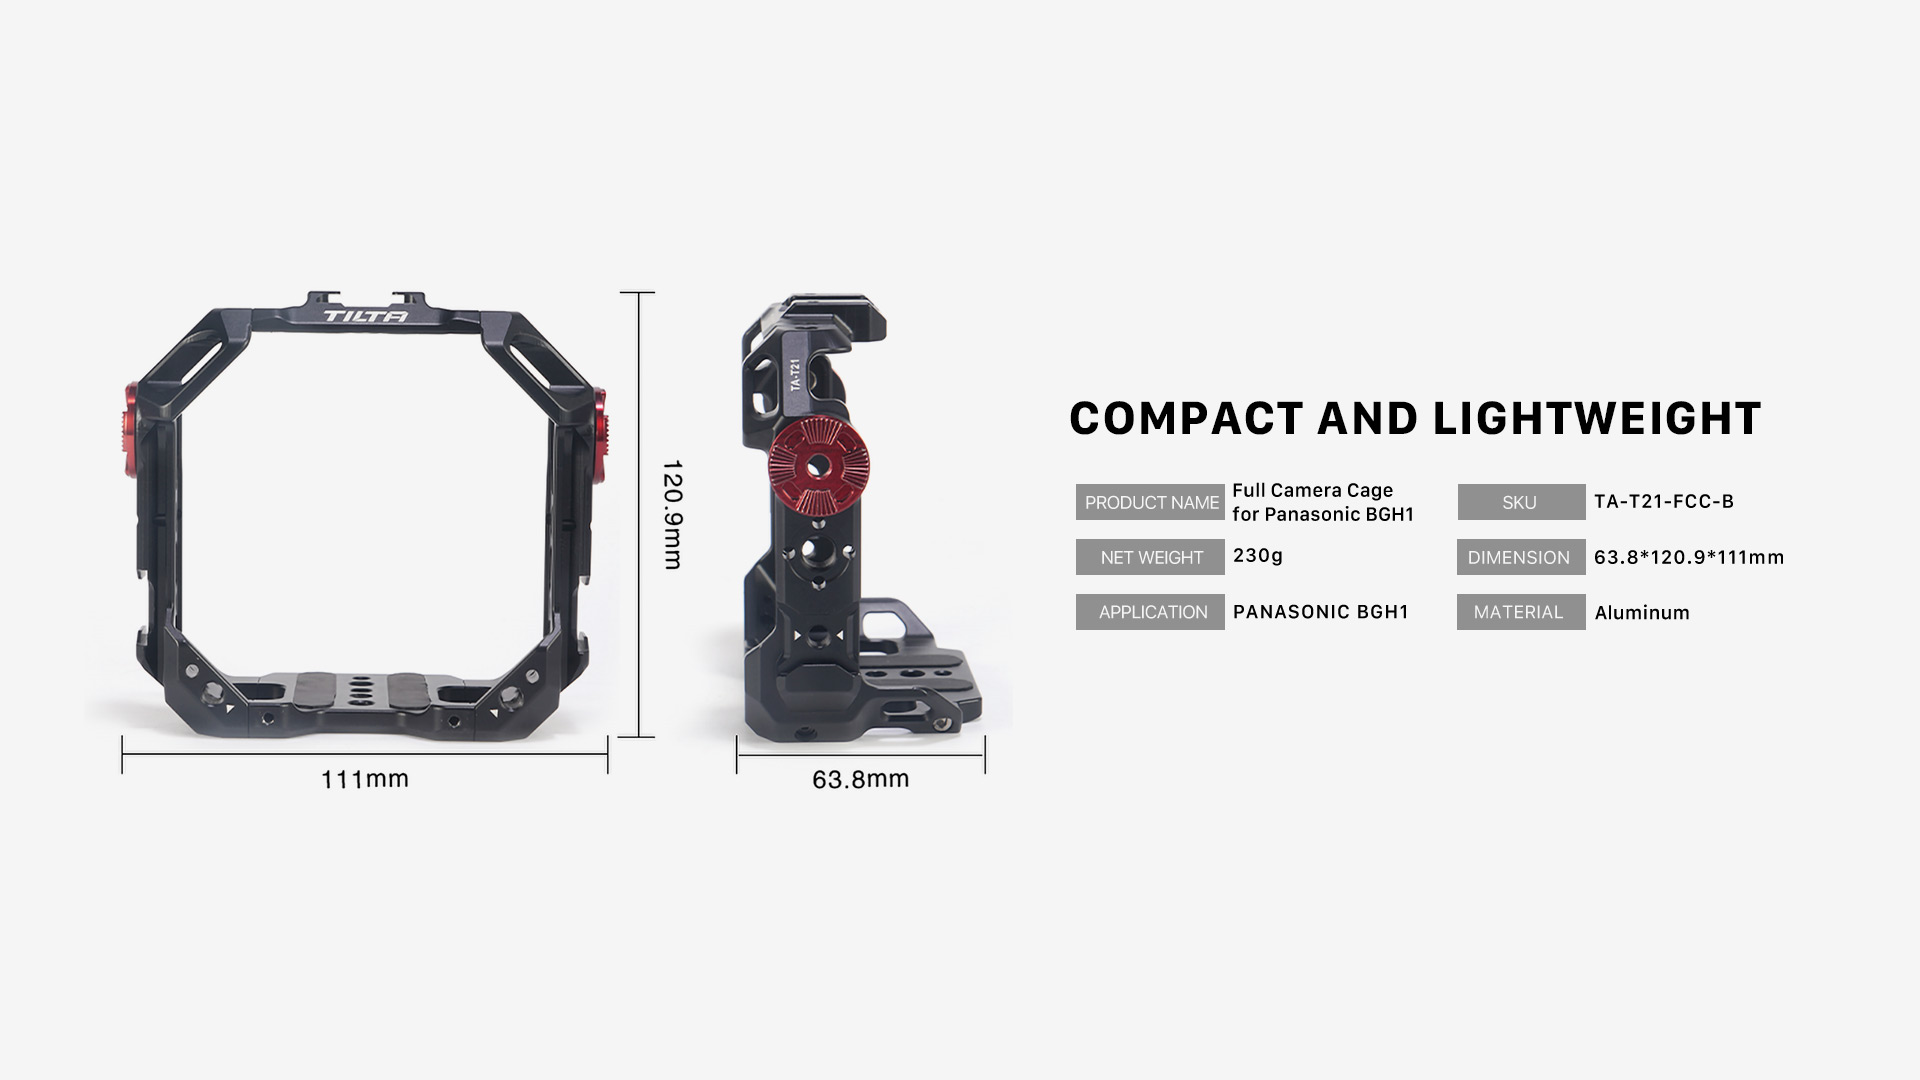 compact and lightweight TA-T21-FCC-B